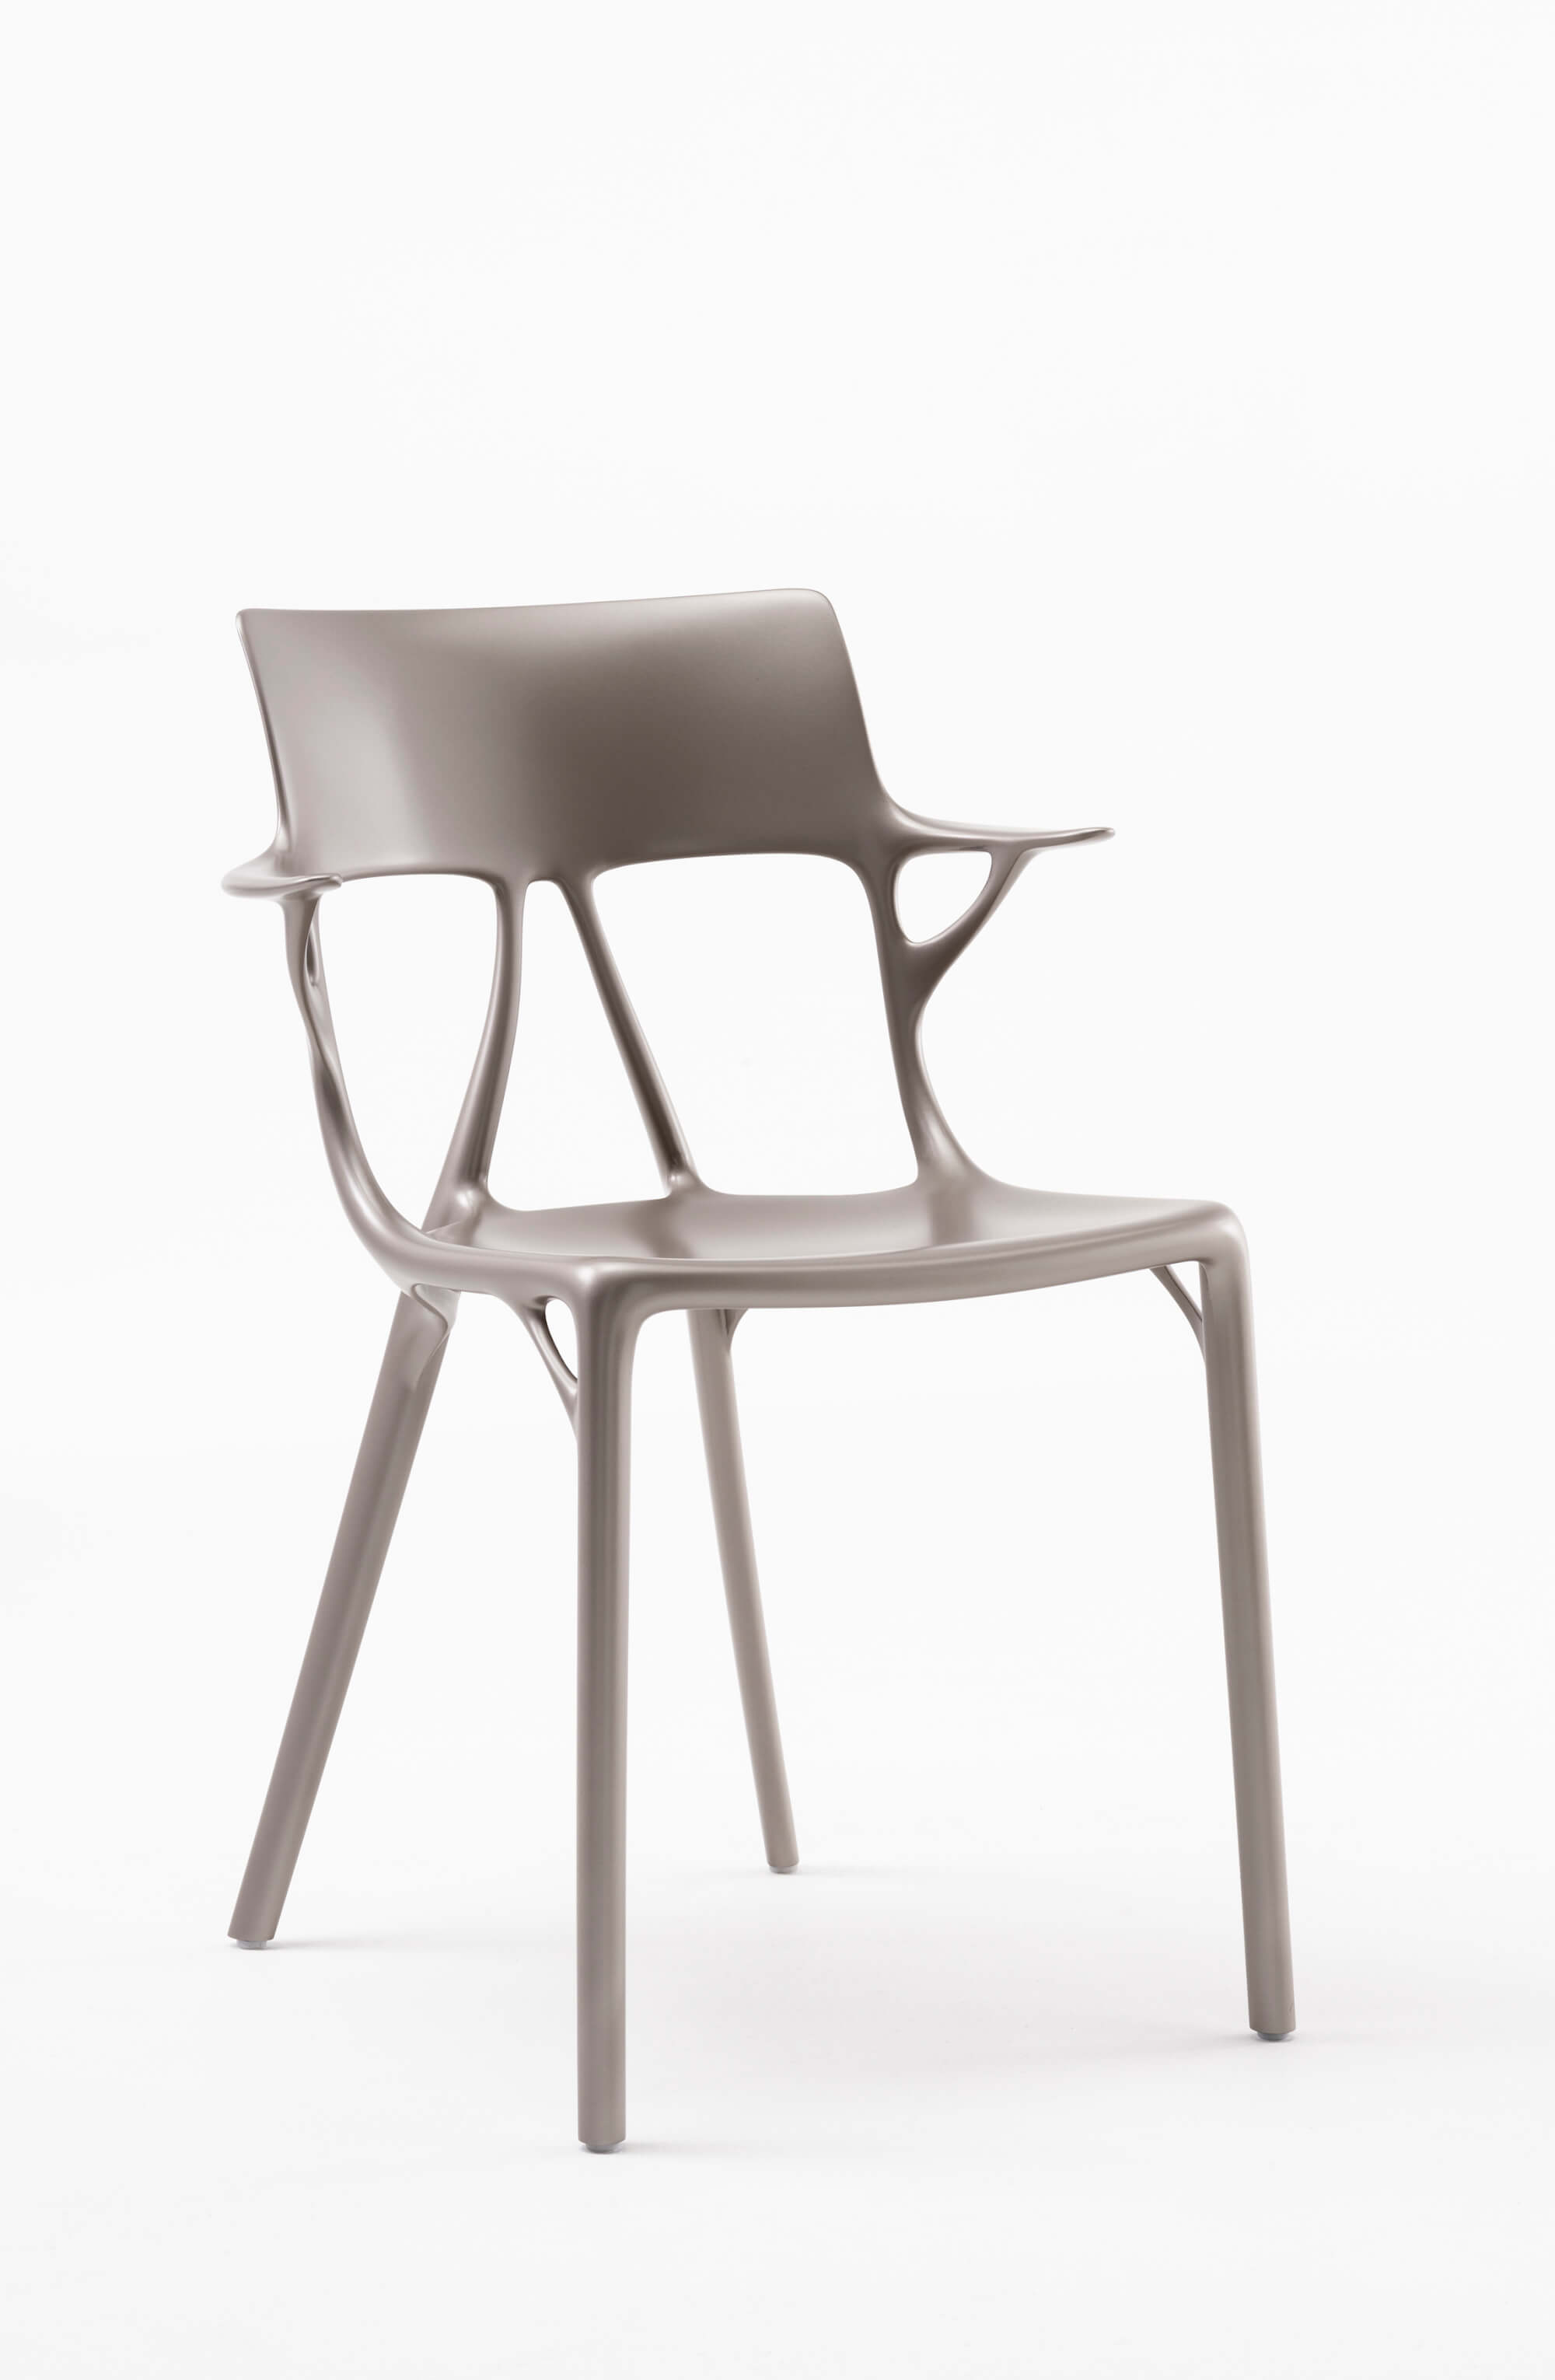 A.I. FOR KARTELL BY STARCK, POWERED BY AUTODESK